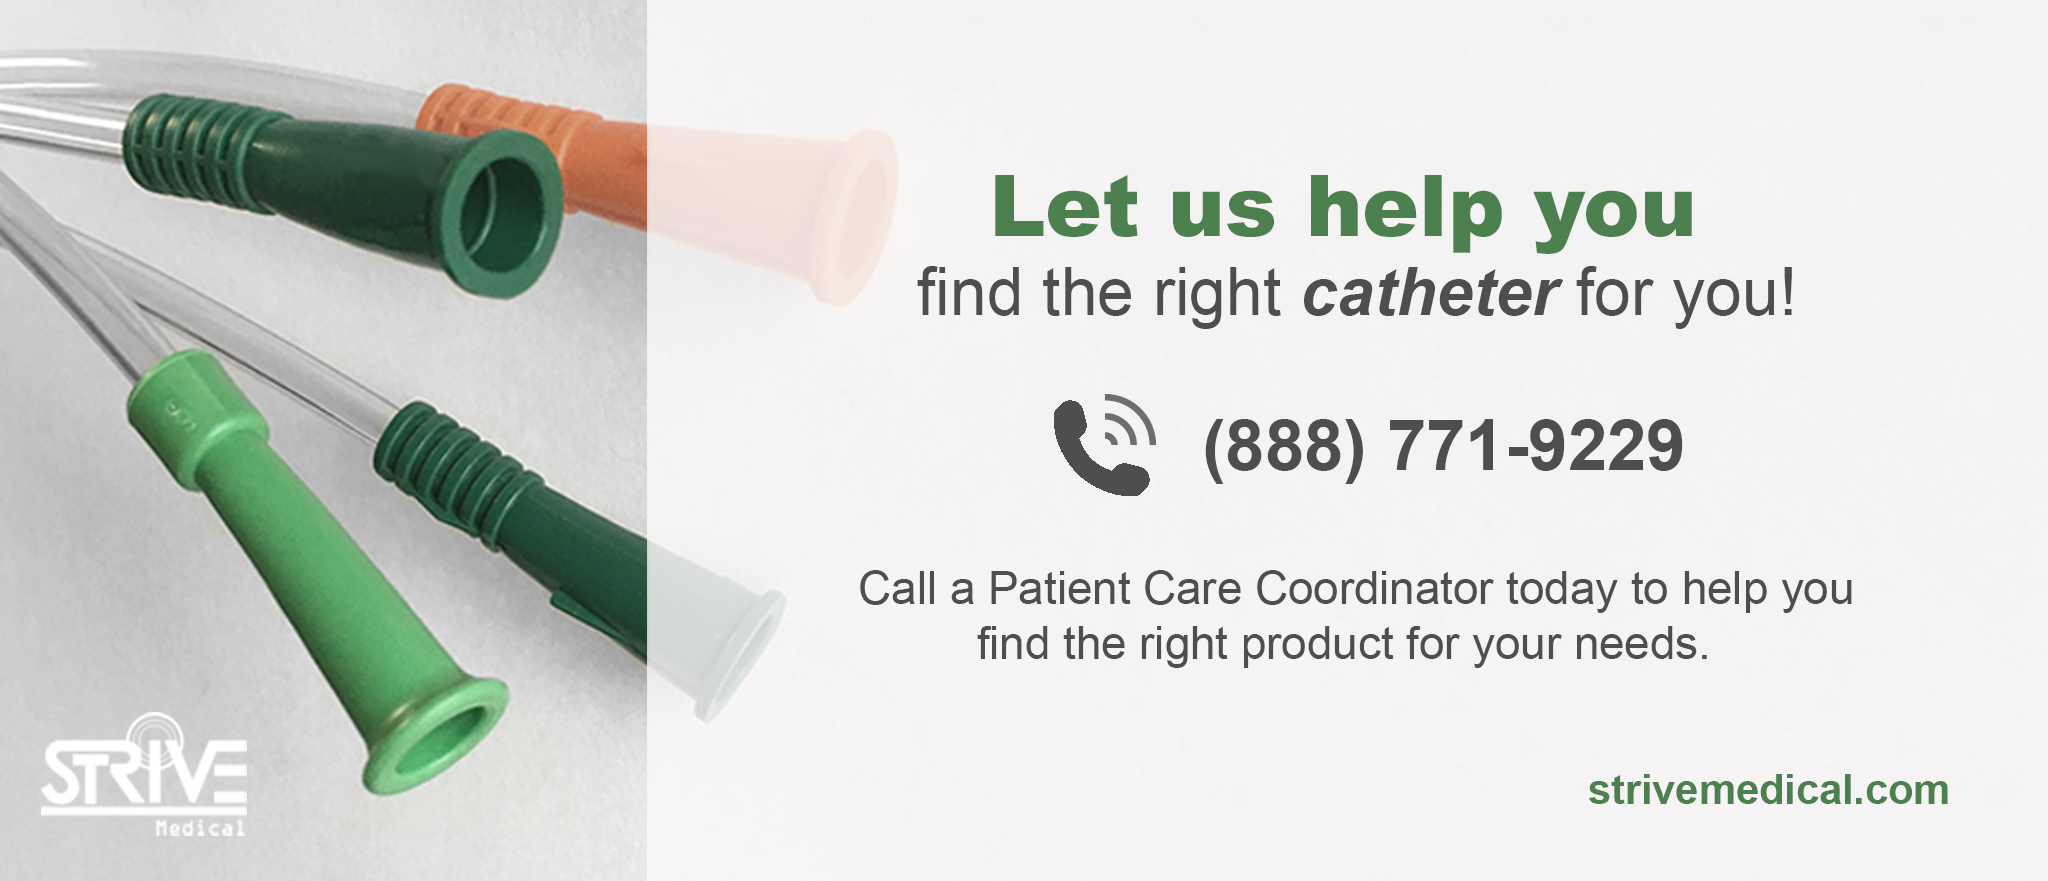 StriveMedical_FindingYourCatheter5